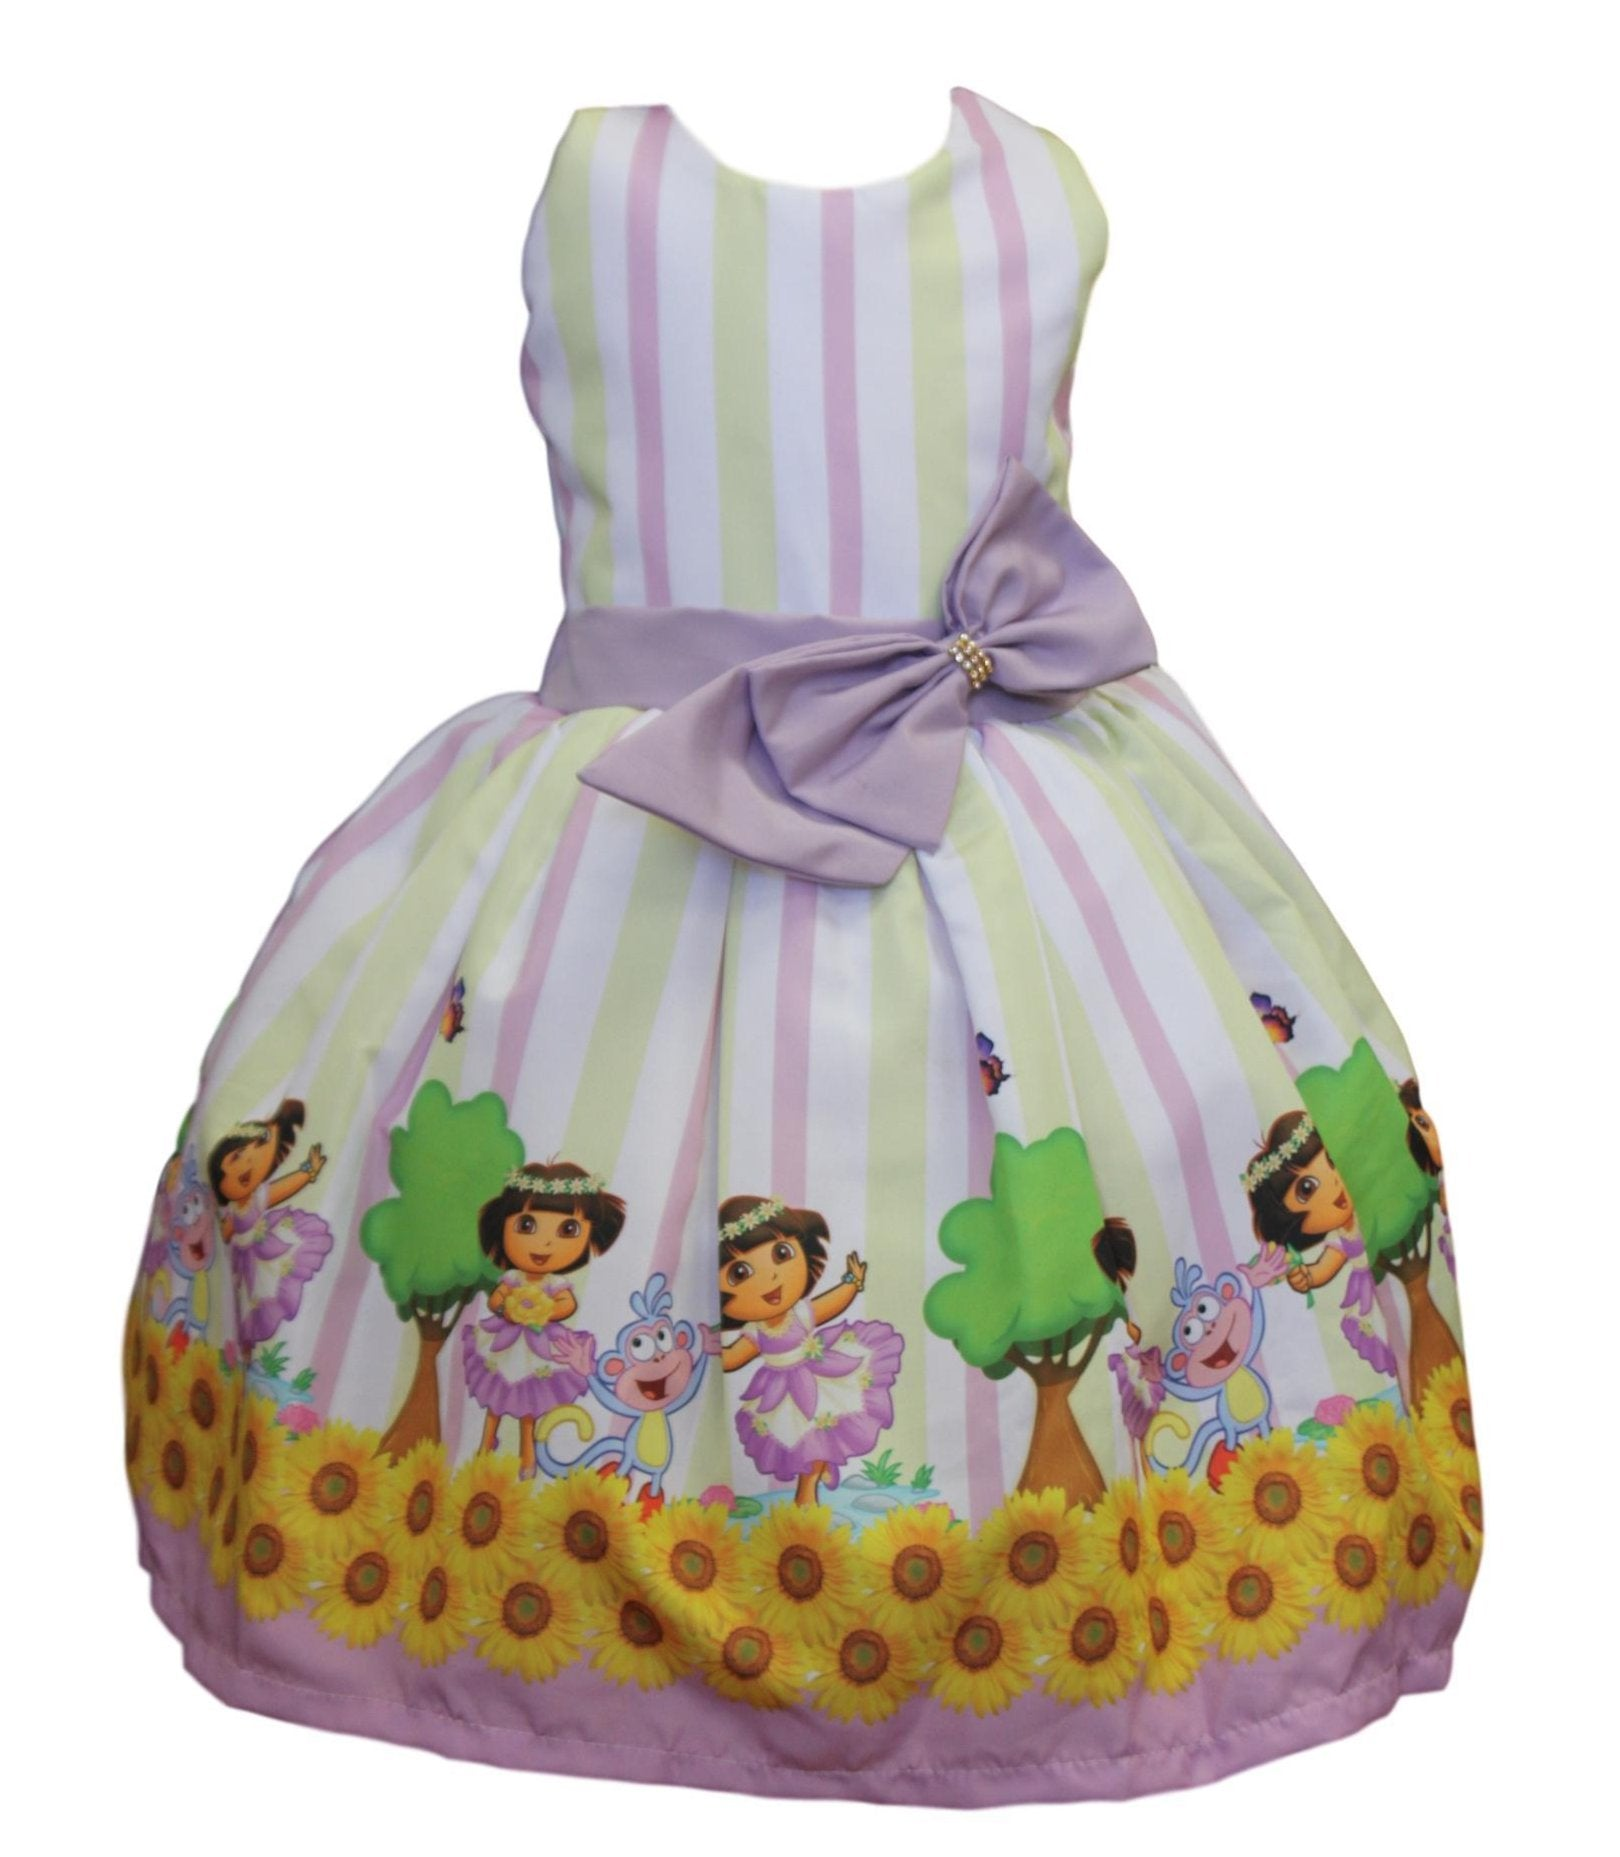 Dora the Explorer Dress by Baby Eden